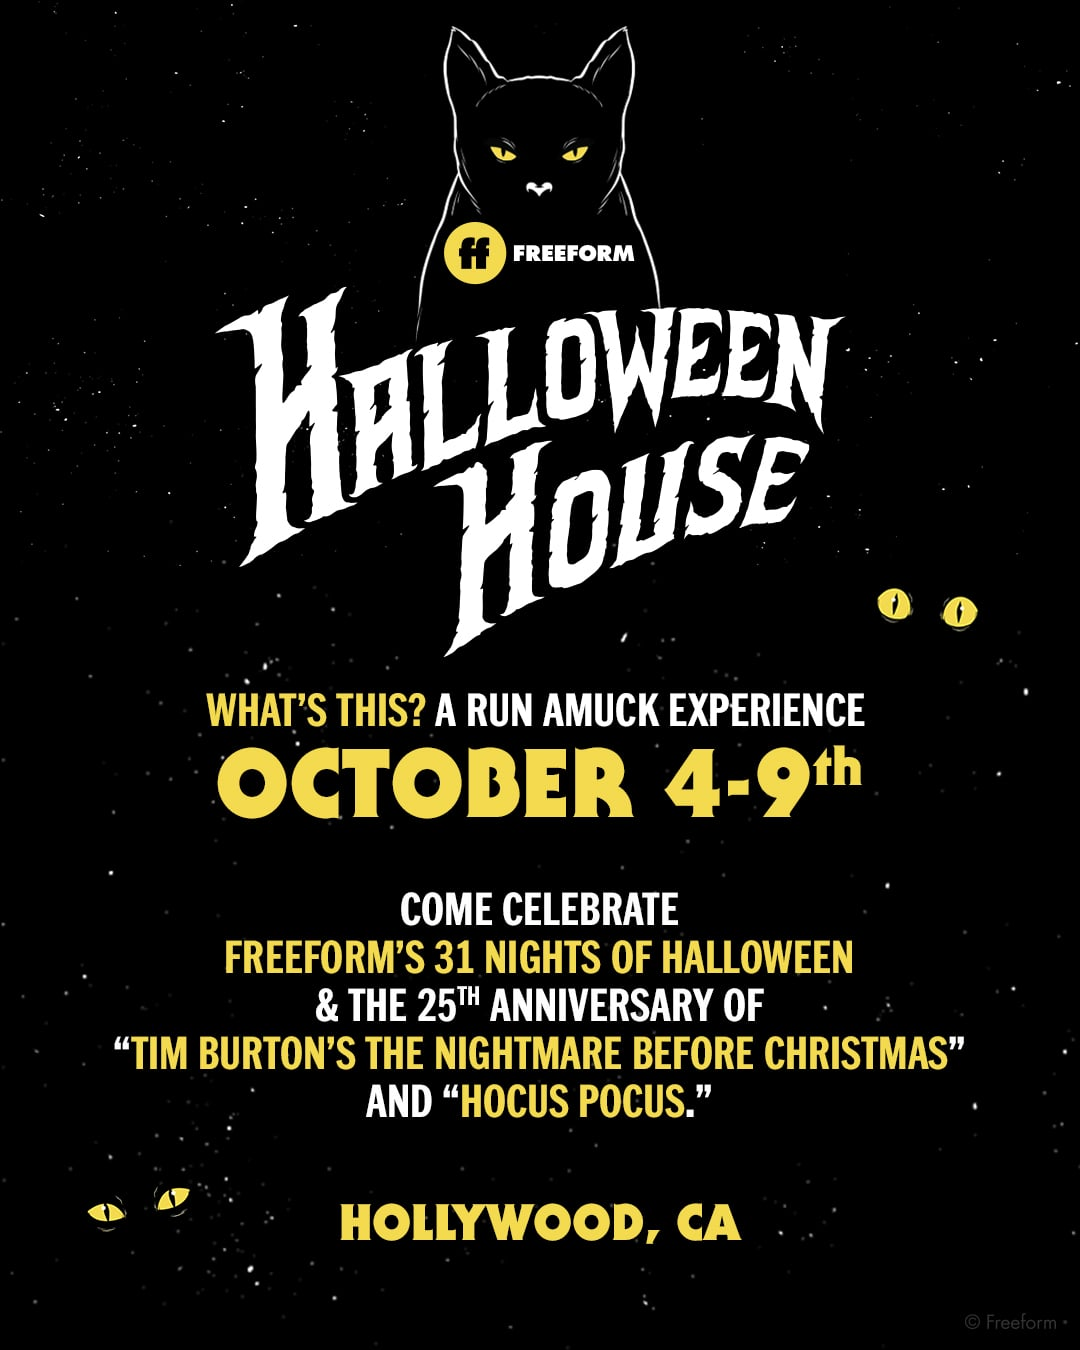 in celebration of freeforms recently announced 31 nights of halloween programming event the network is transforming the historic lombardi house in